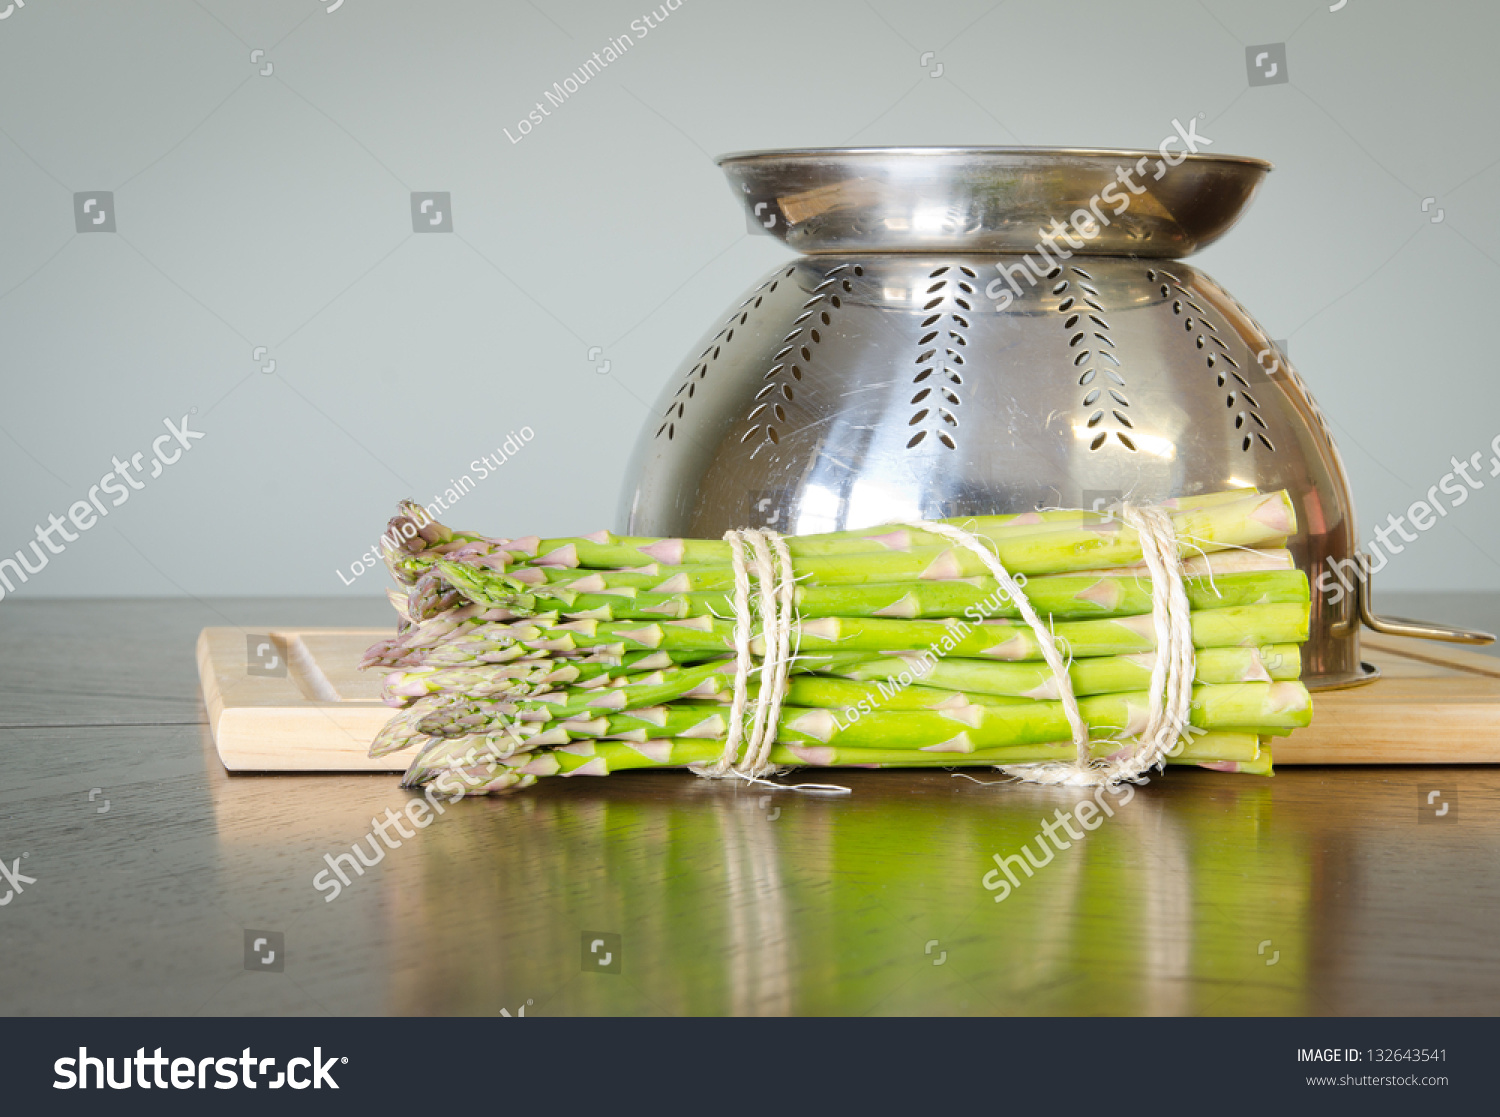 how to cook asparagus in strainer